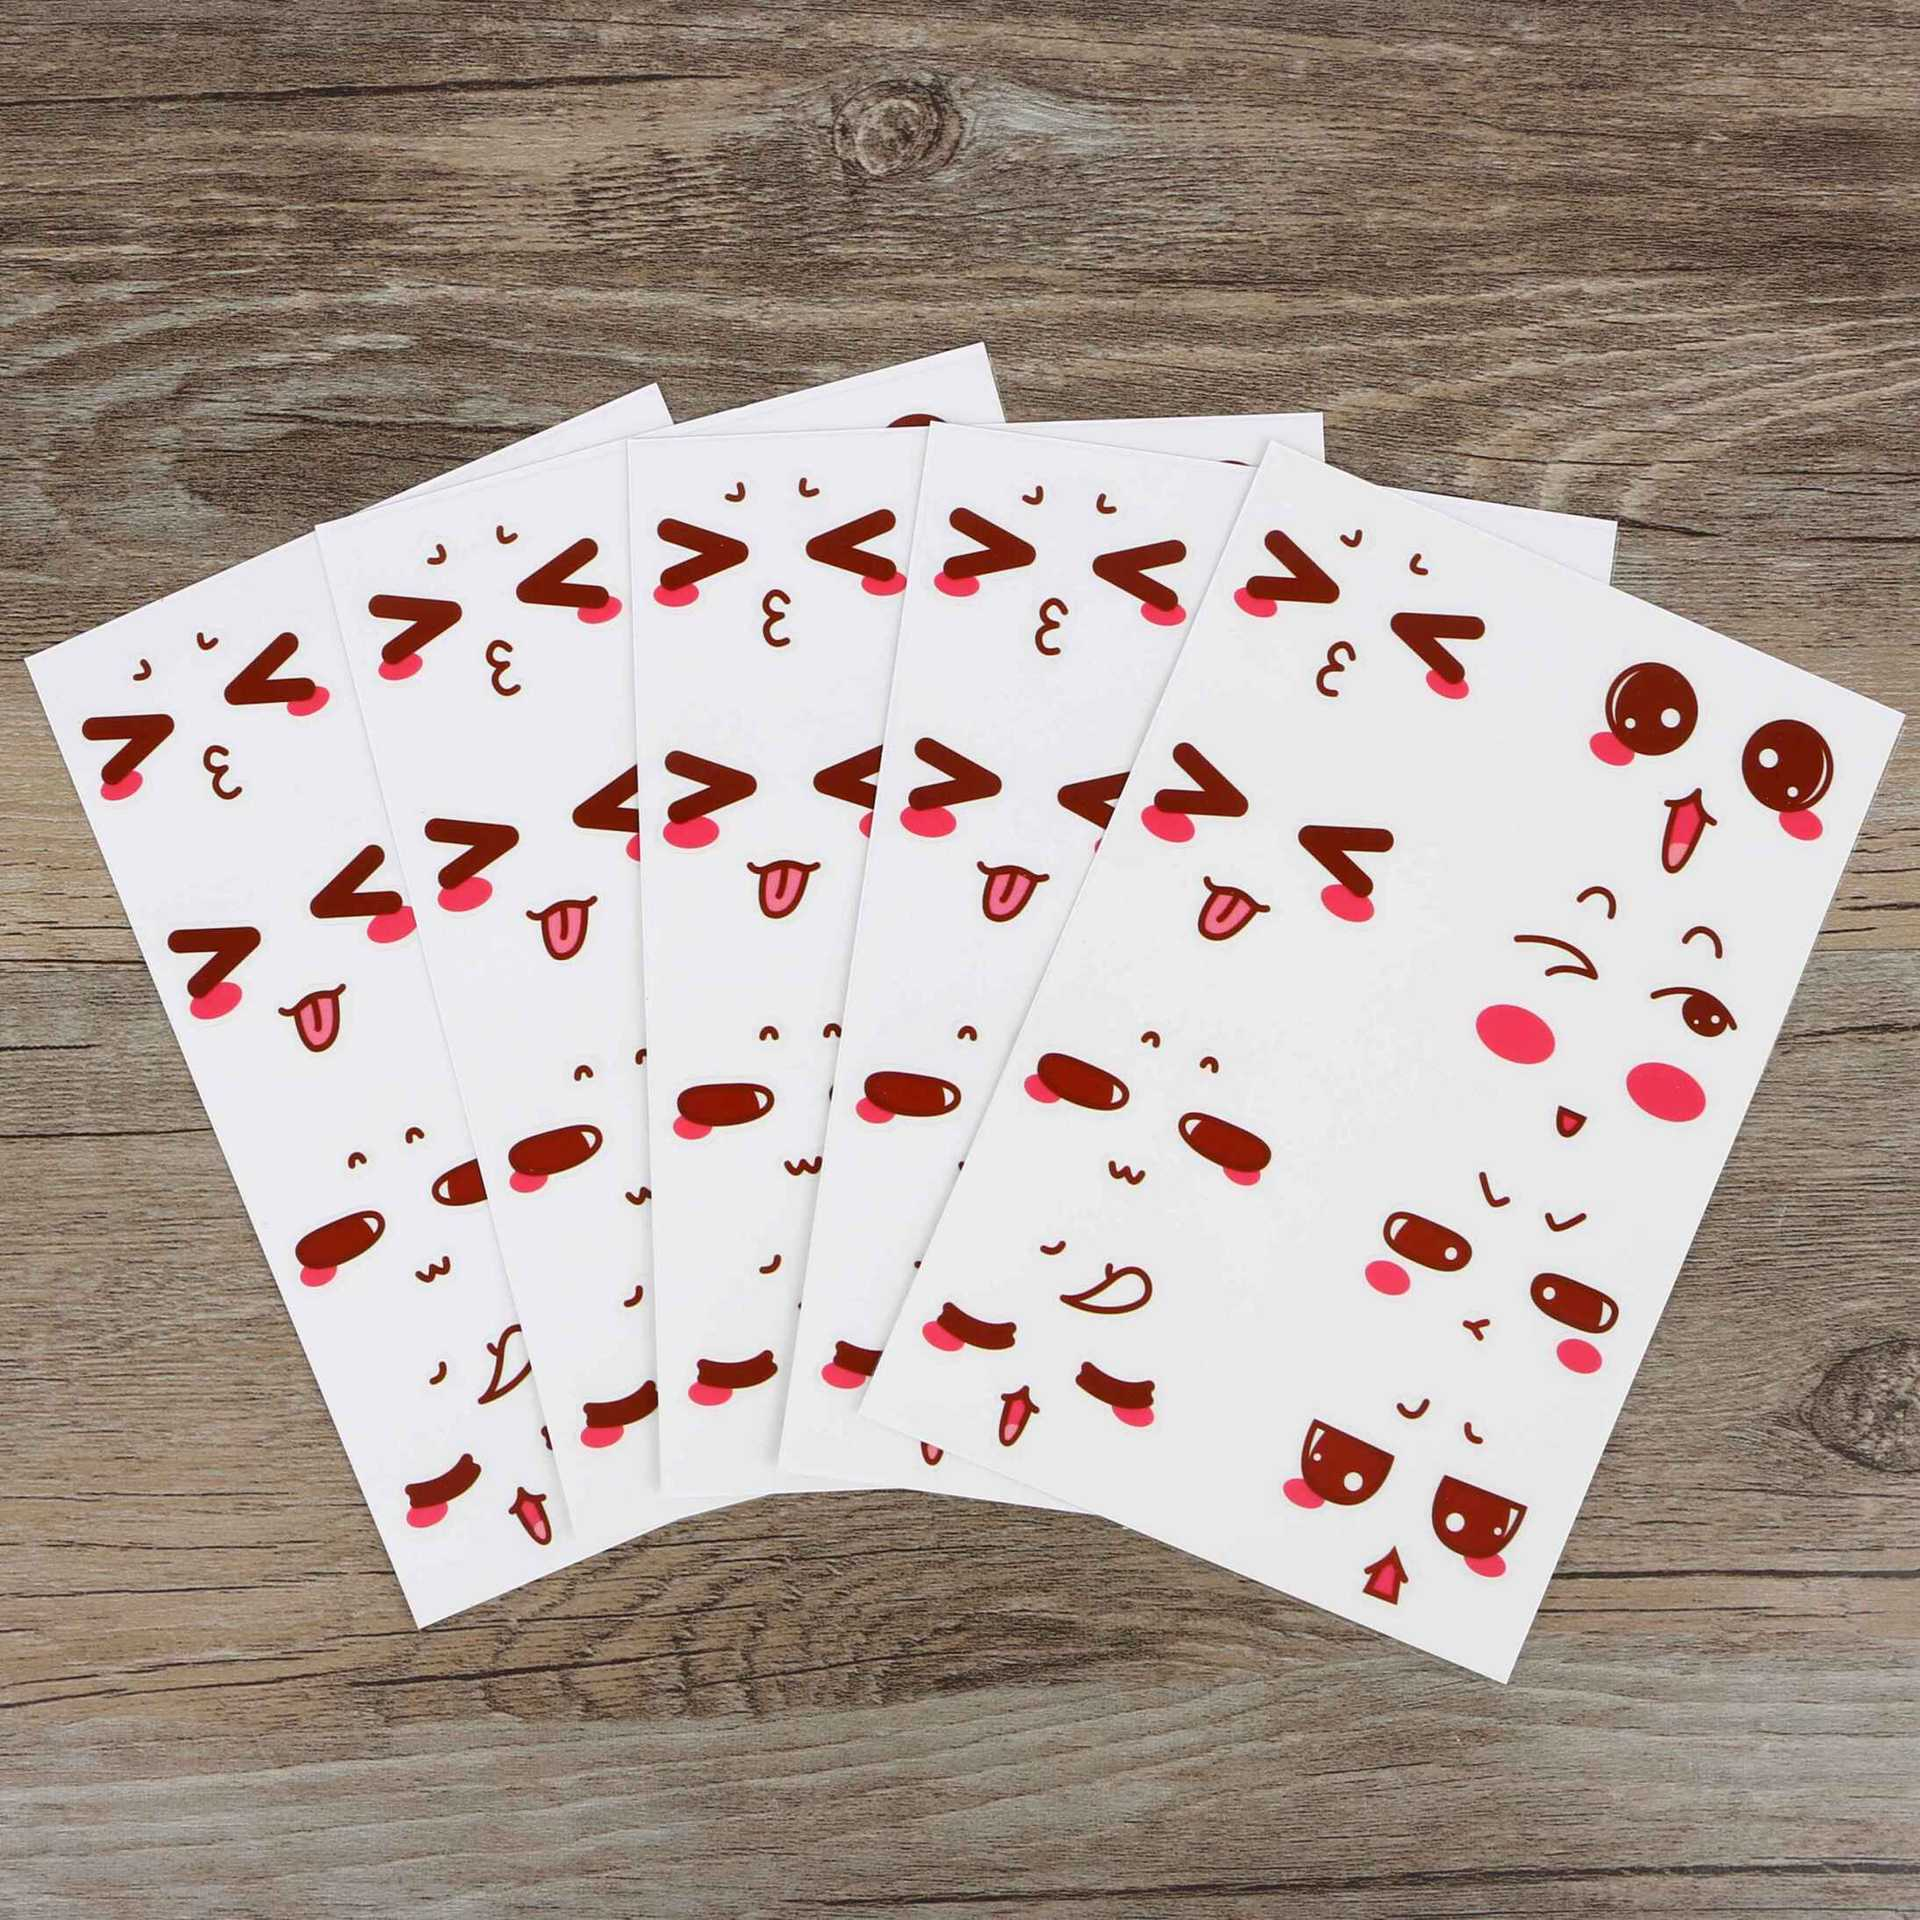 Cute Cartoon Emotion Stickers for School and Office Use